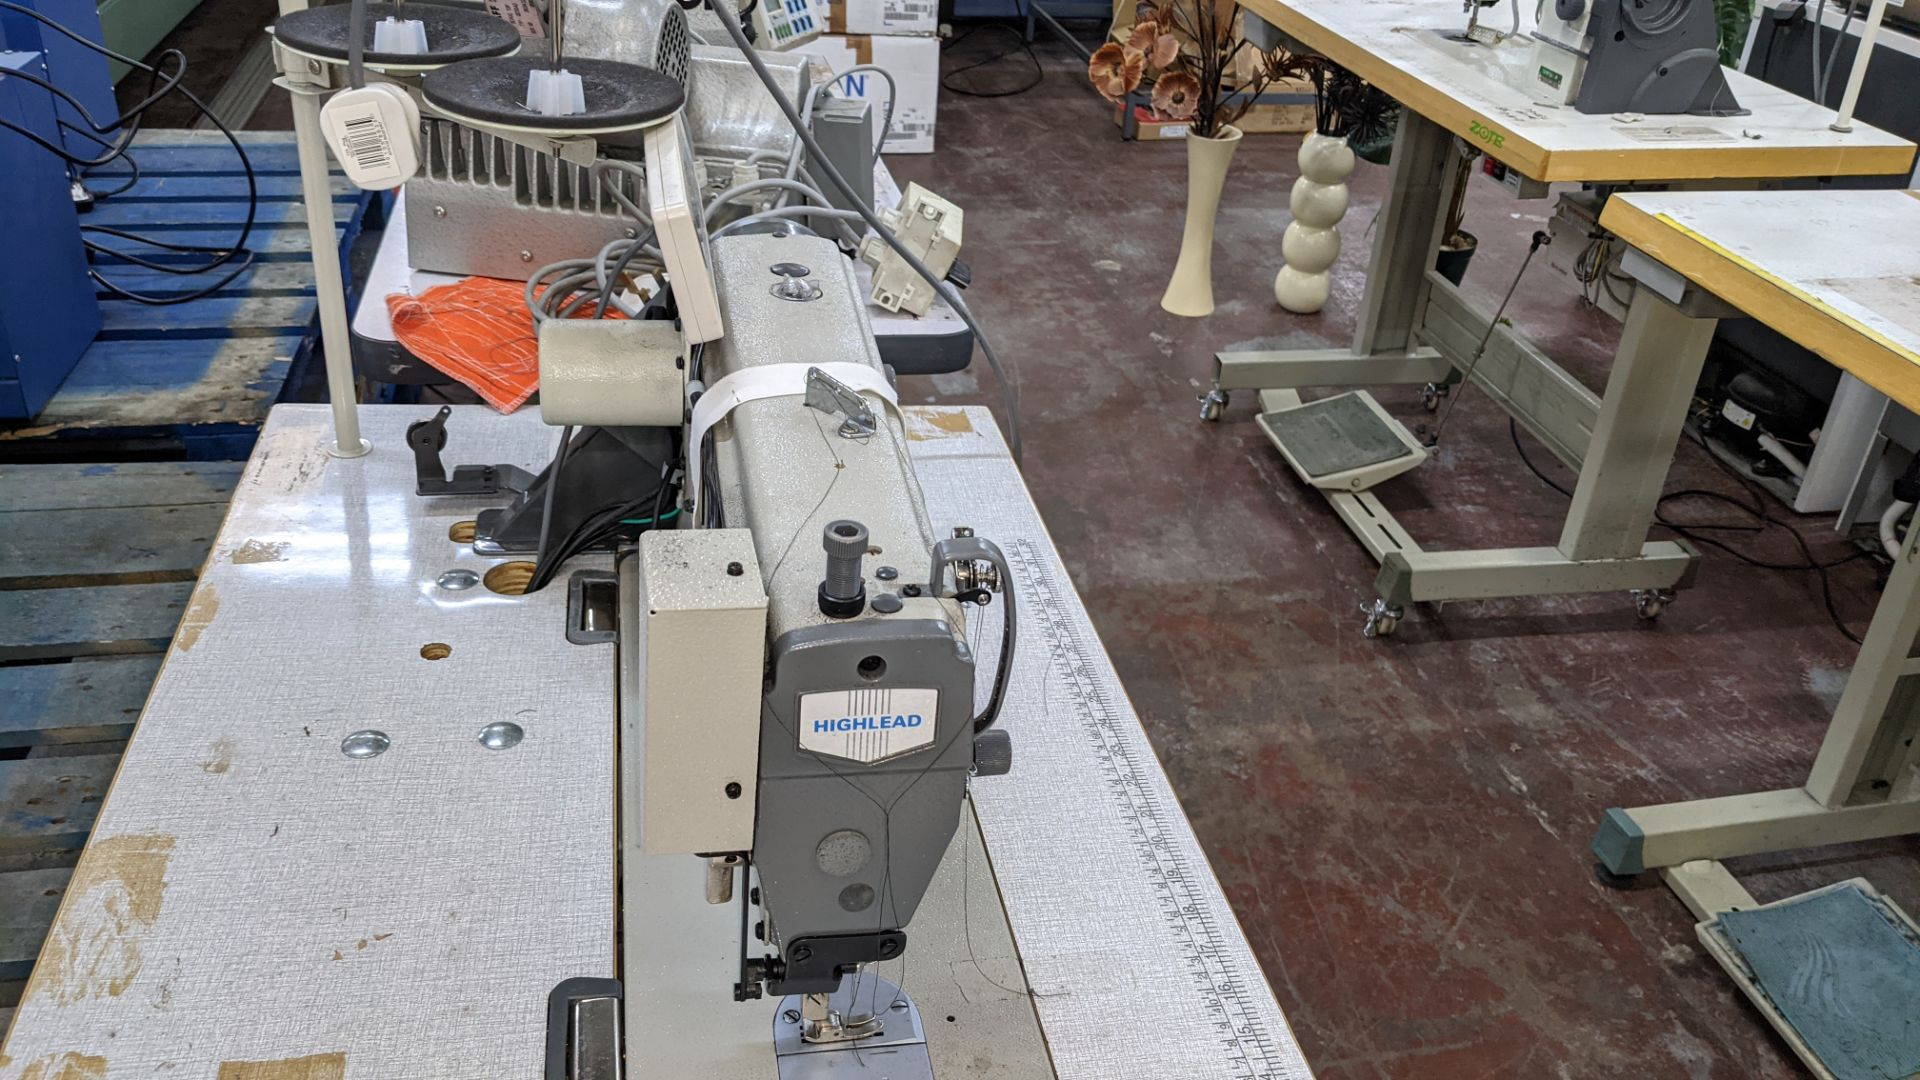 Highlead model GC128-M-D3 sewing machine - Image 11 of 18